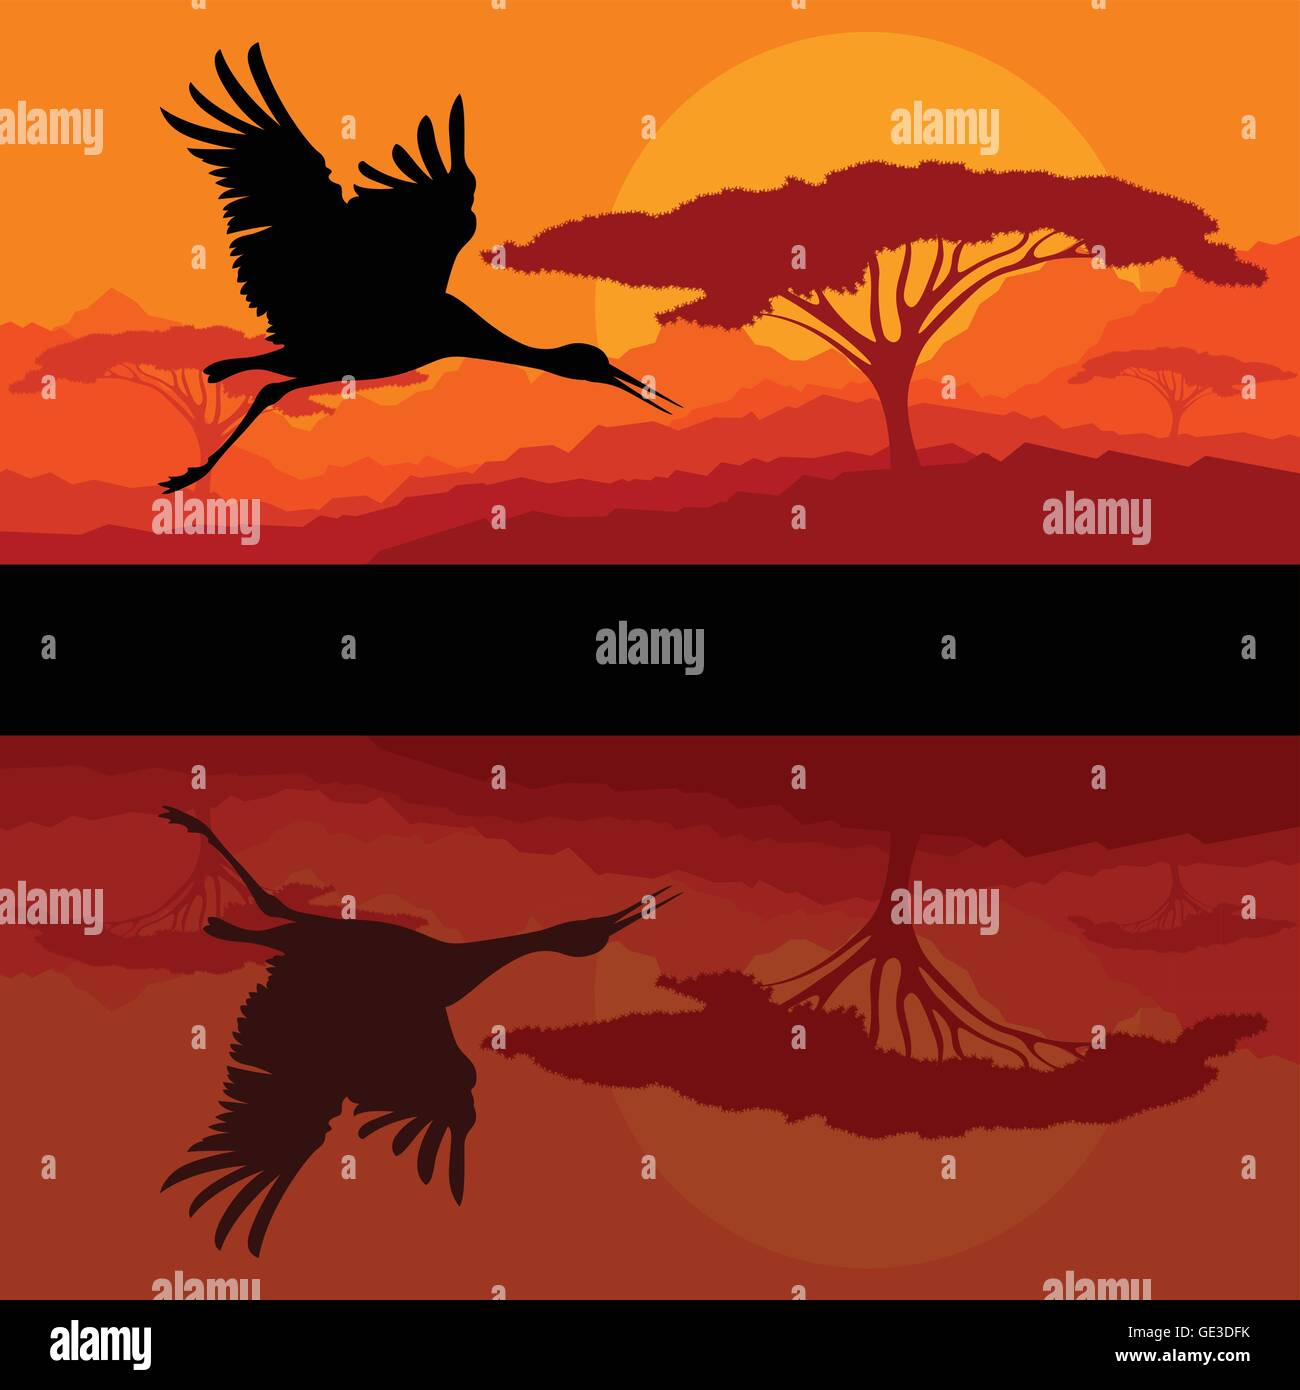 Crane flying in wild mountain nature landscape background - Stock Vector